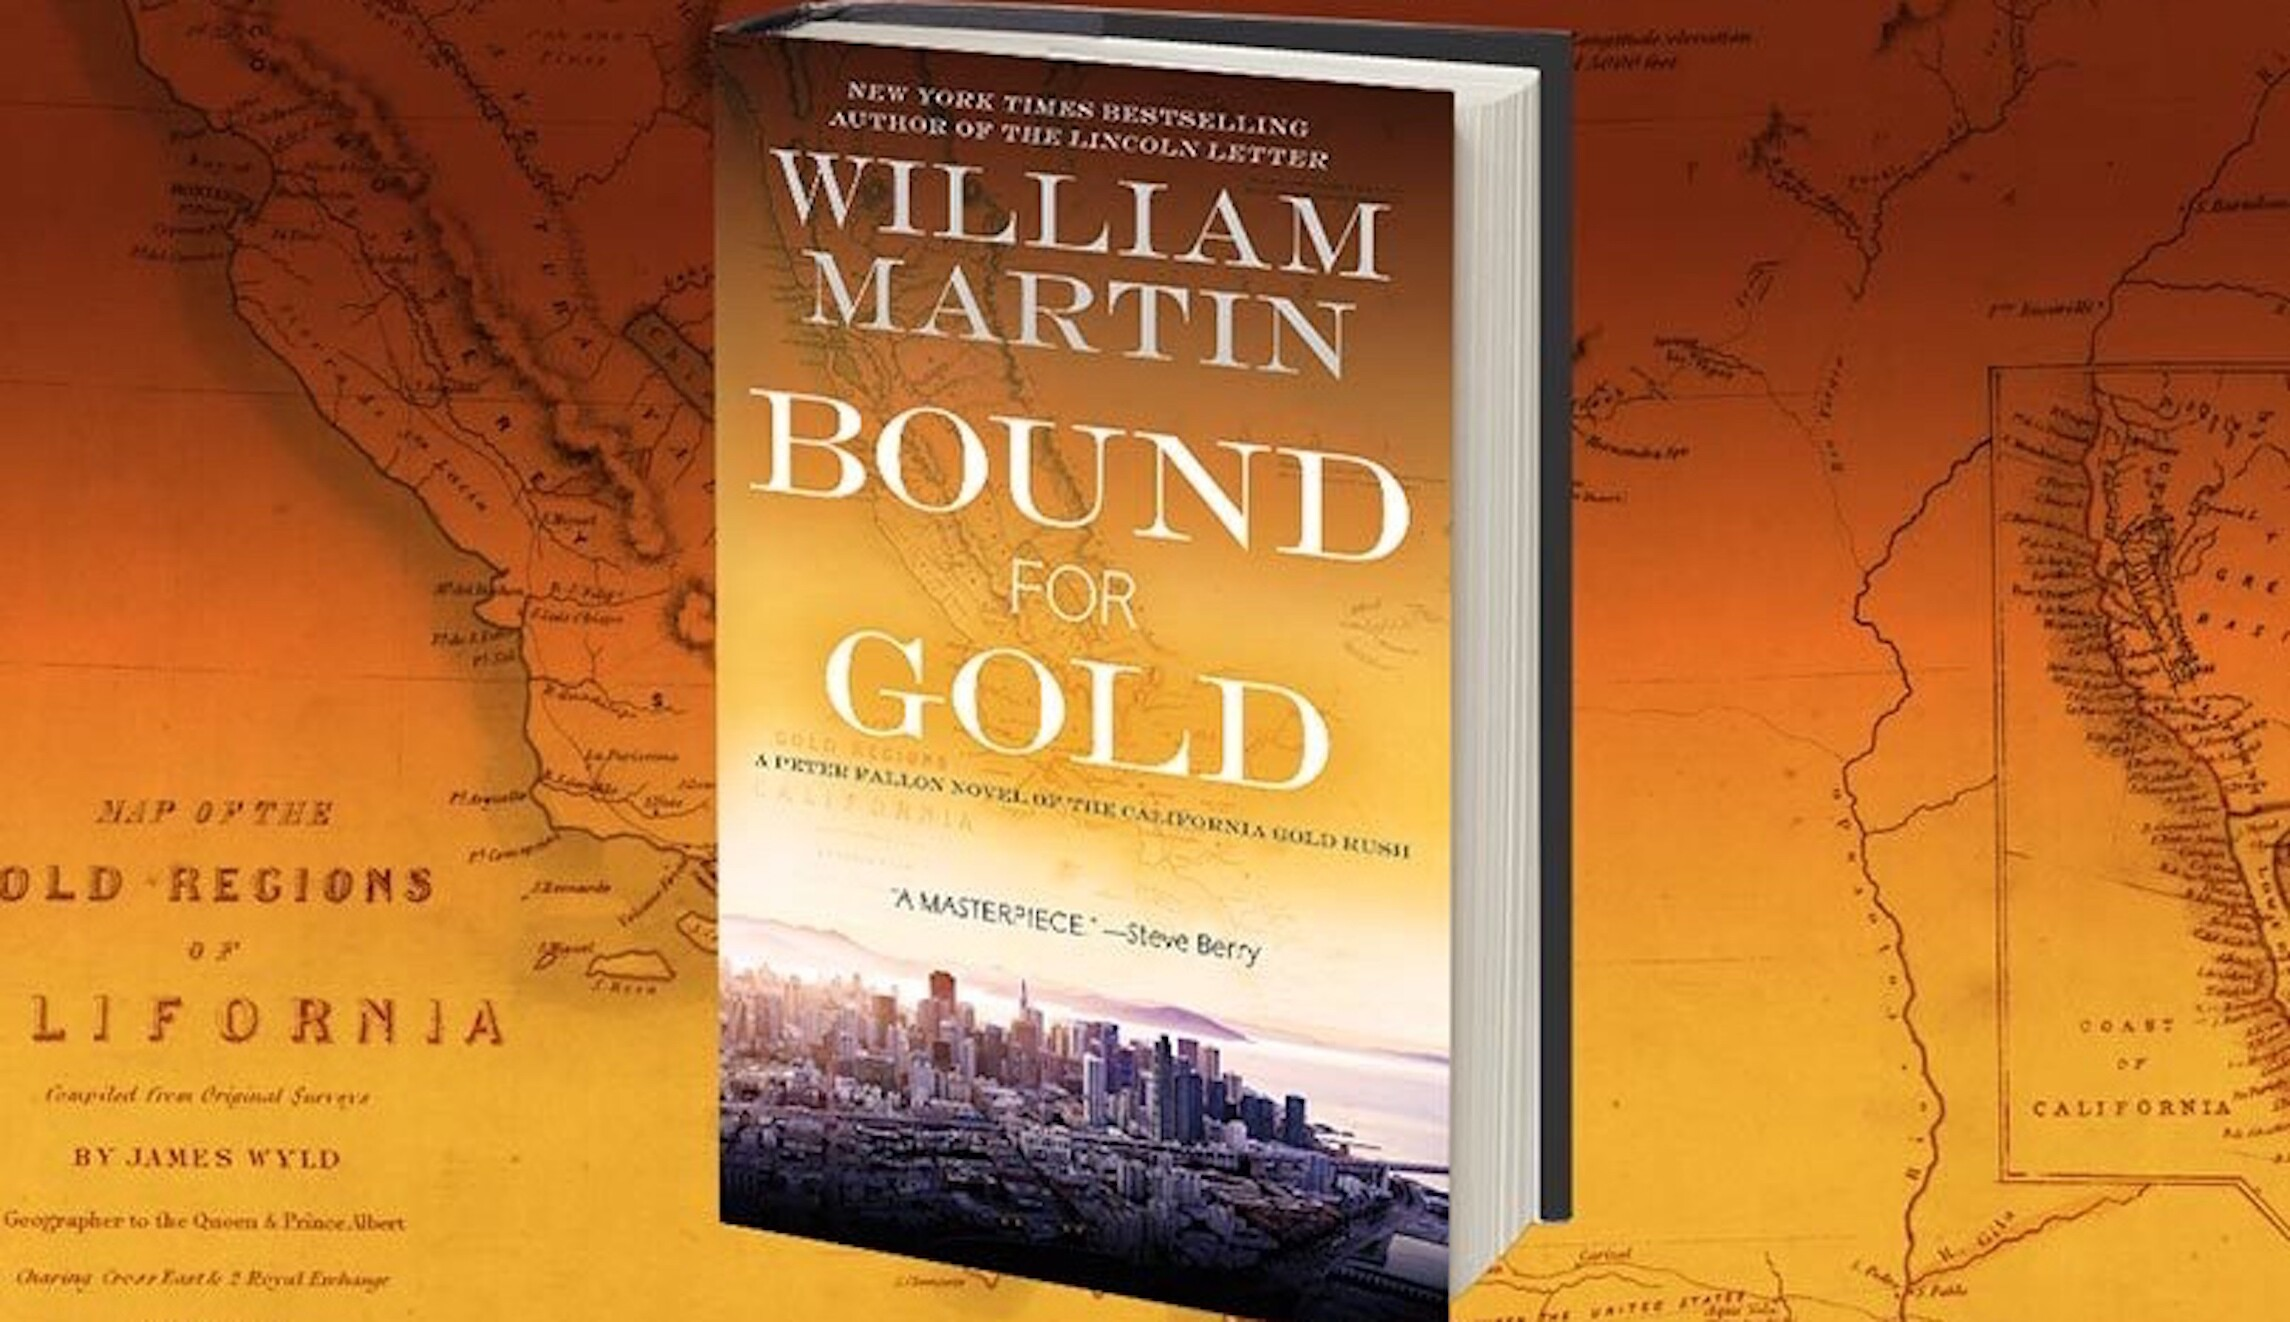 We don\'t know enough about history, but \'Bound for Gold\' helps